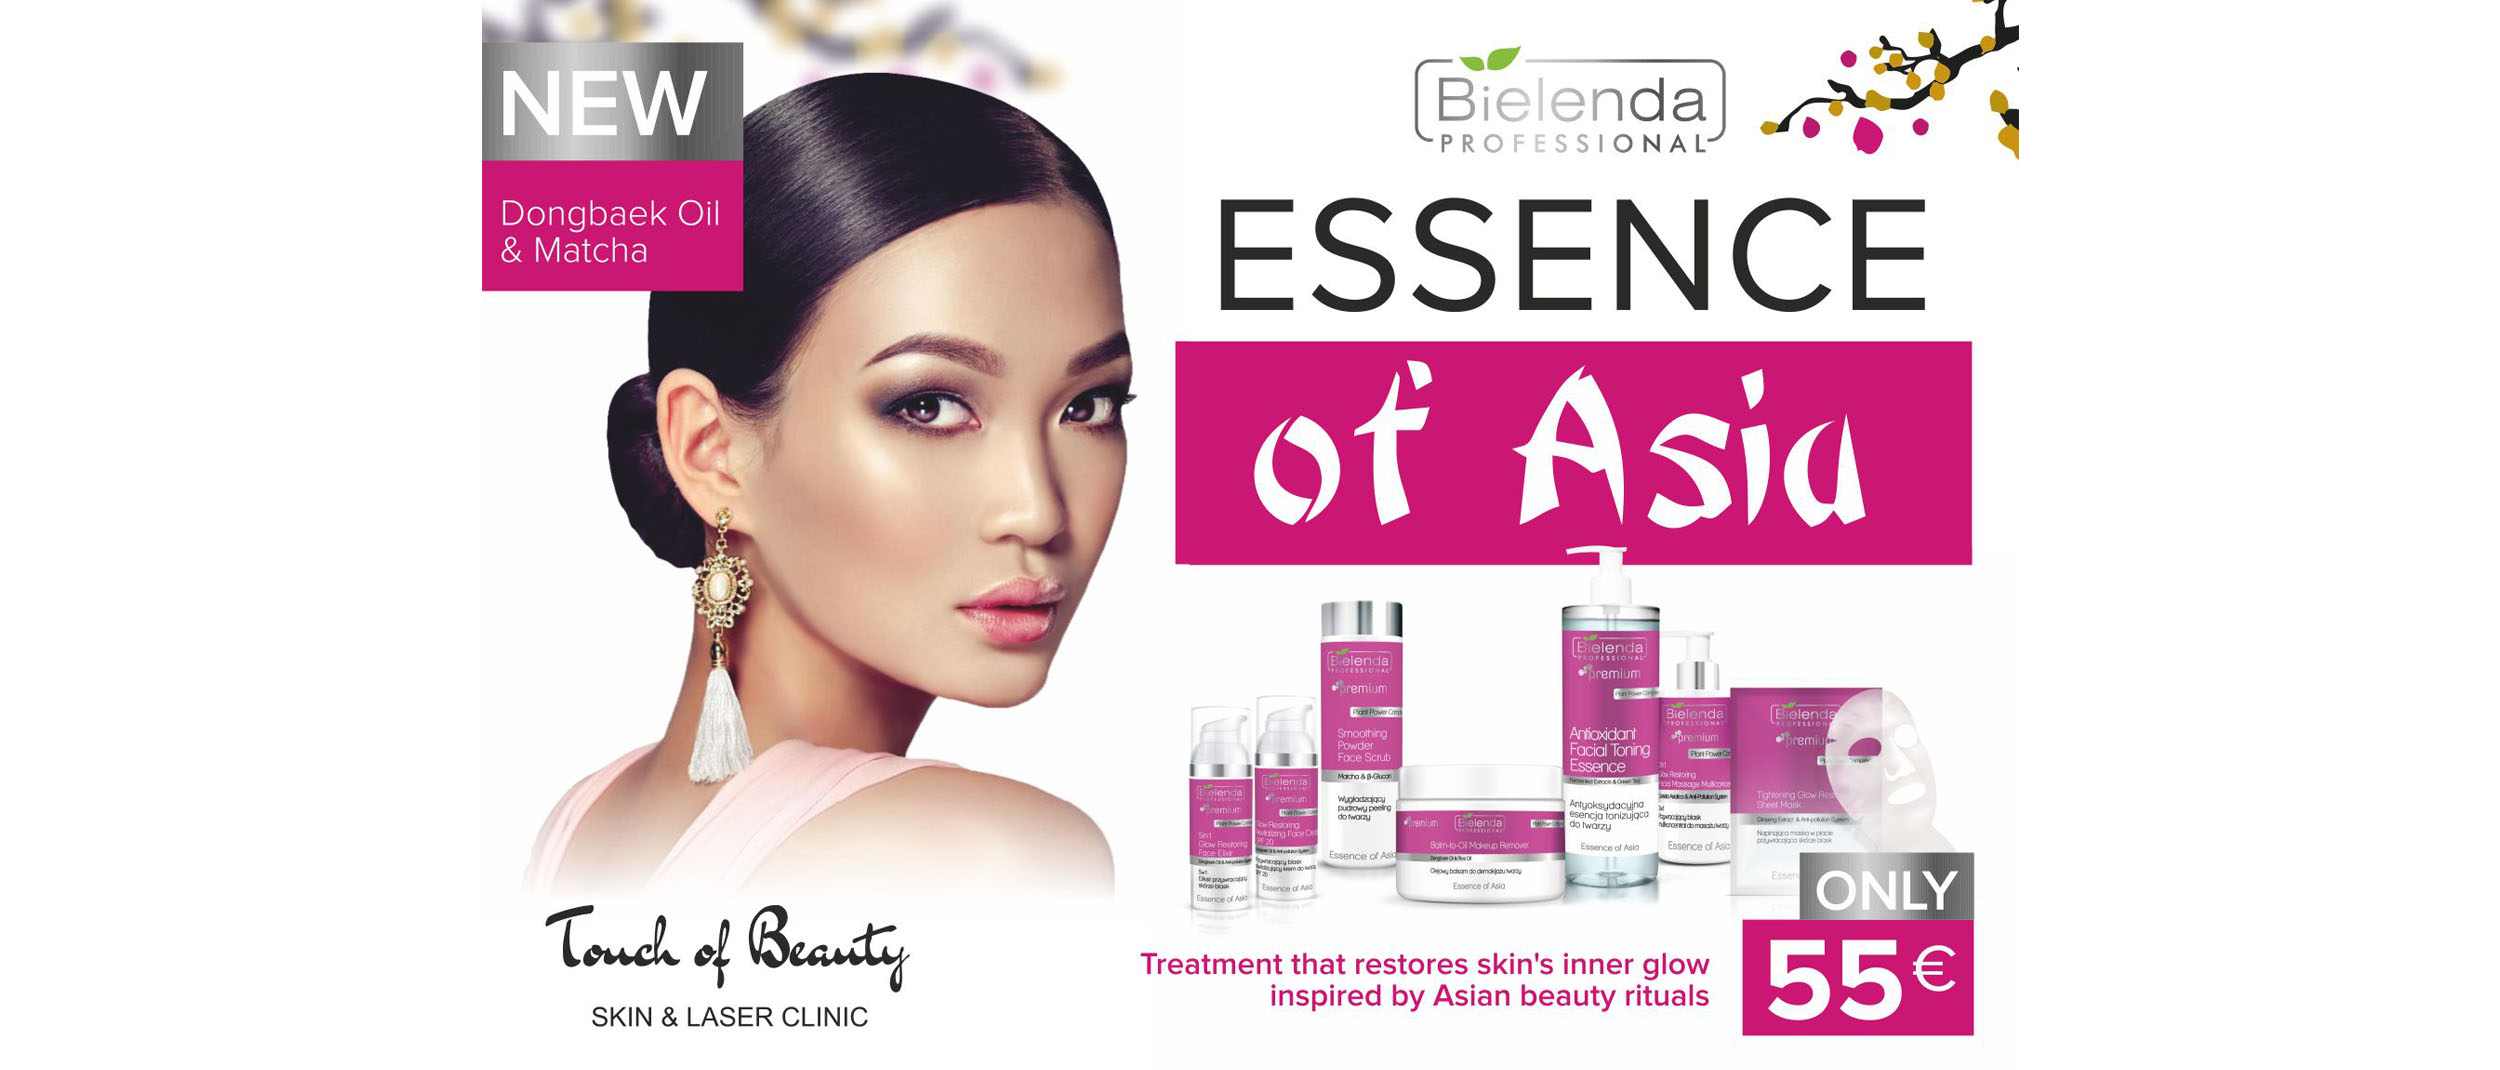 Essence_of_Asia_Offer - Touch of Beauty Cork